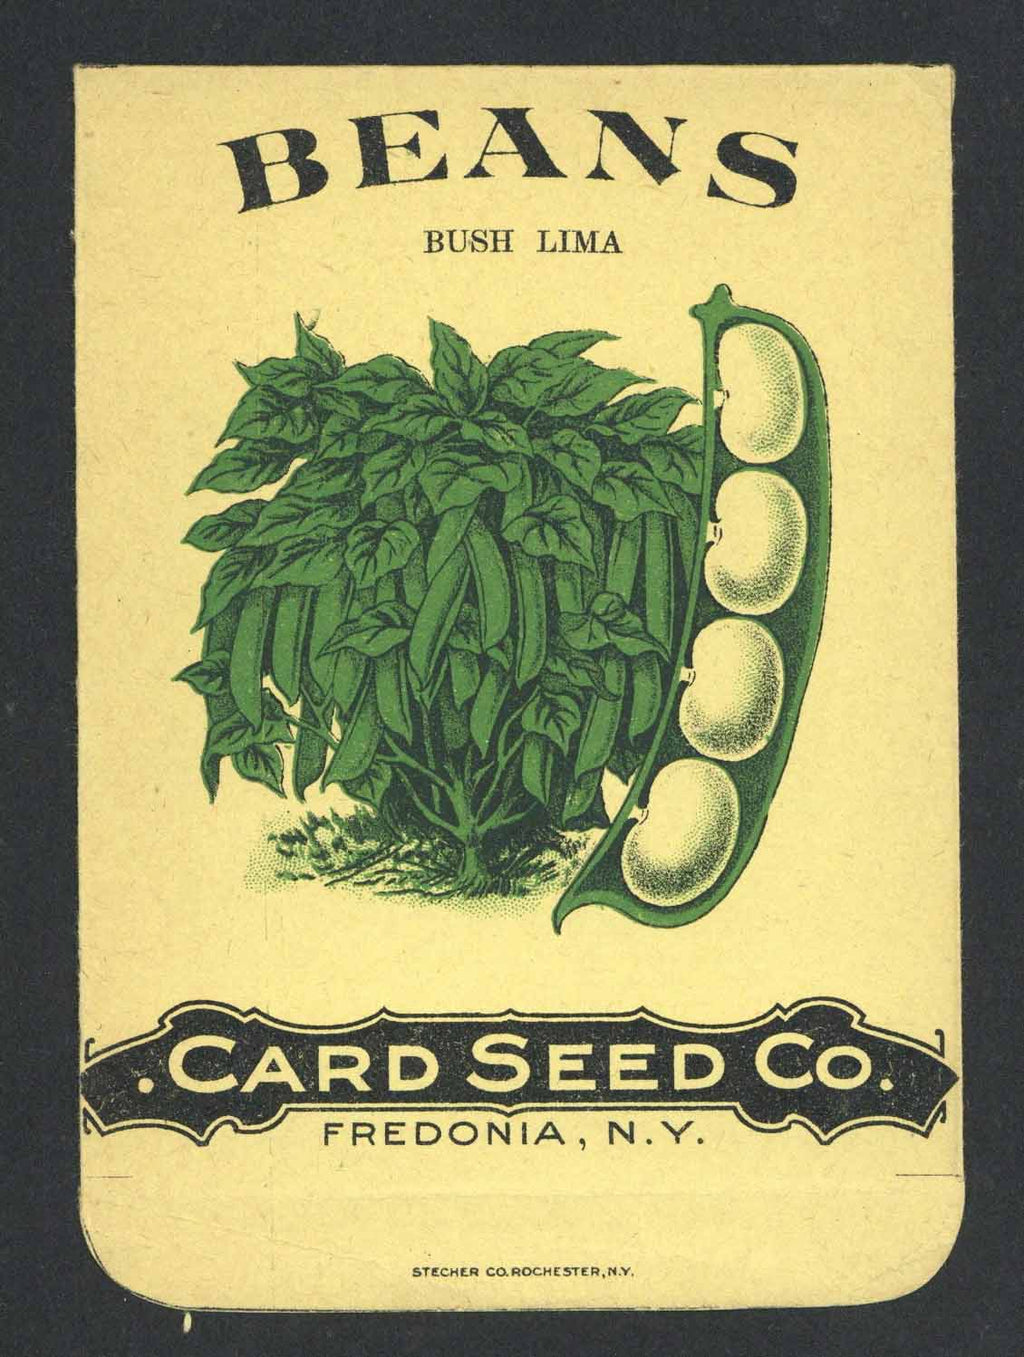 Beans Antique Card Seed Co. Seed Packet, Bush Lima